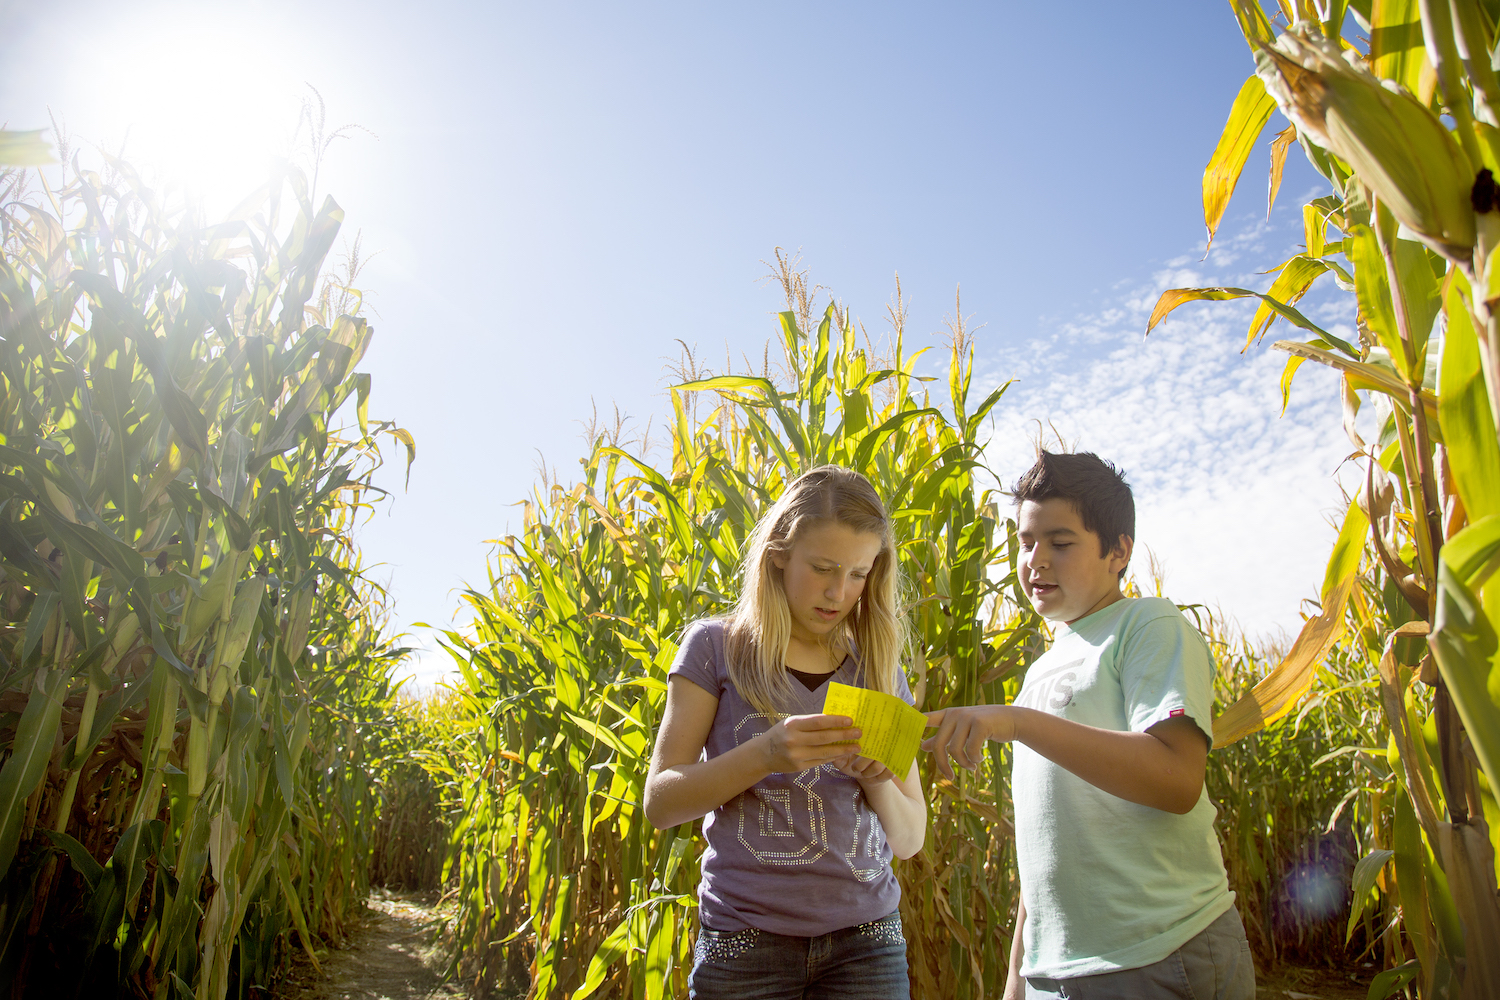 Worth The Drive: Corn mazes, concerts and a Bark in the Park